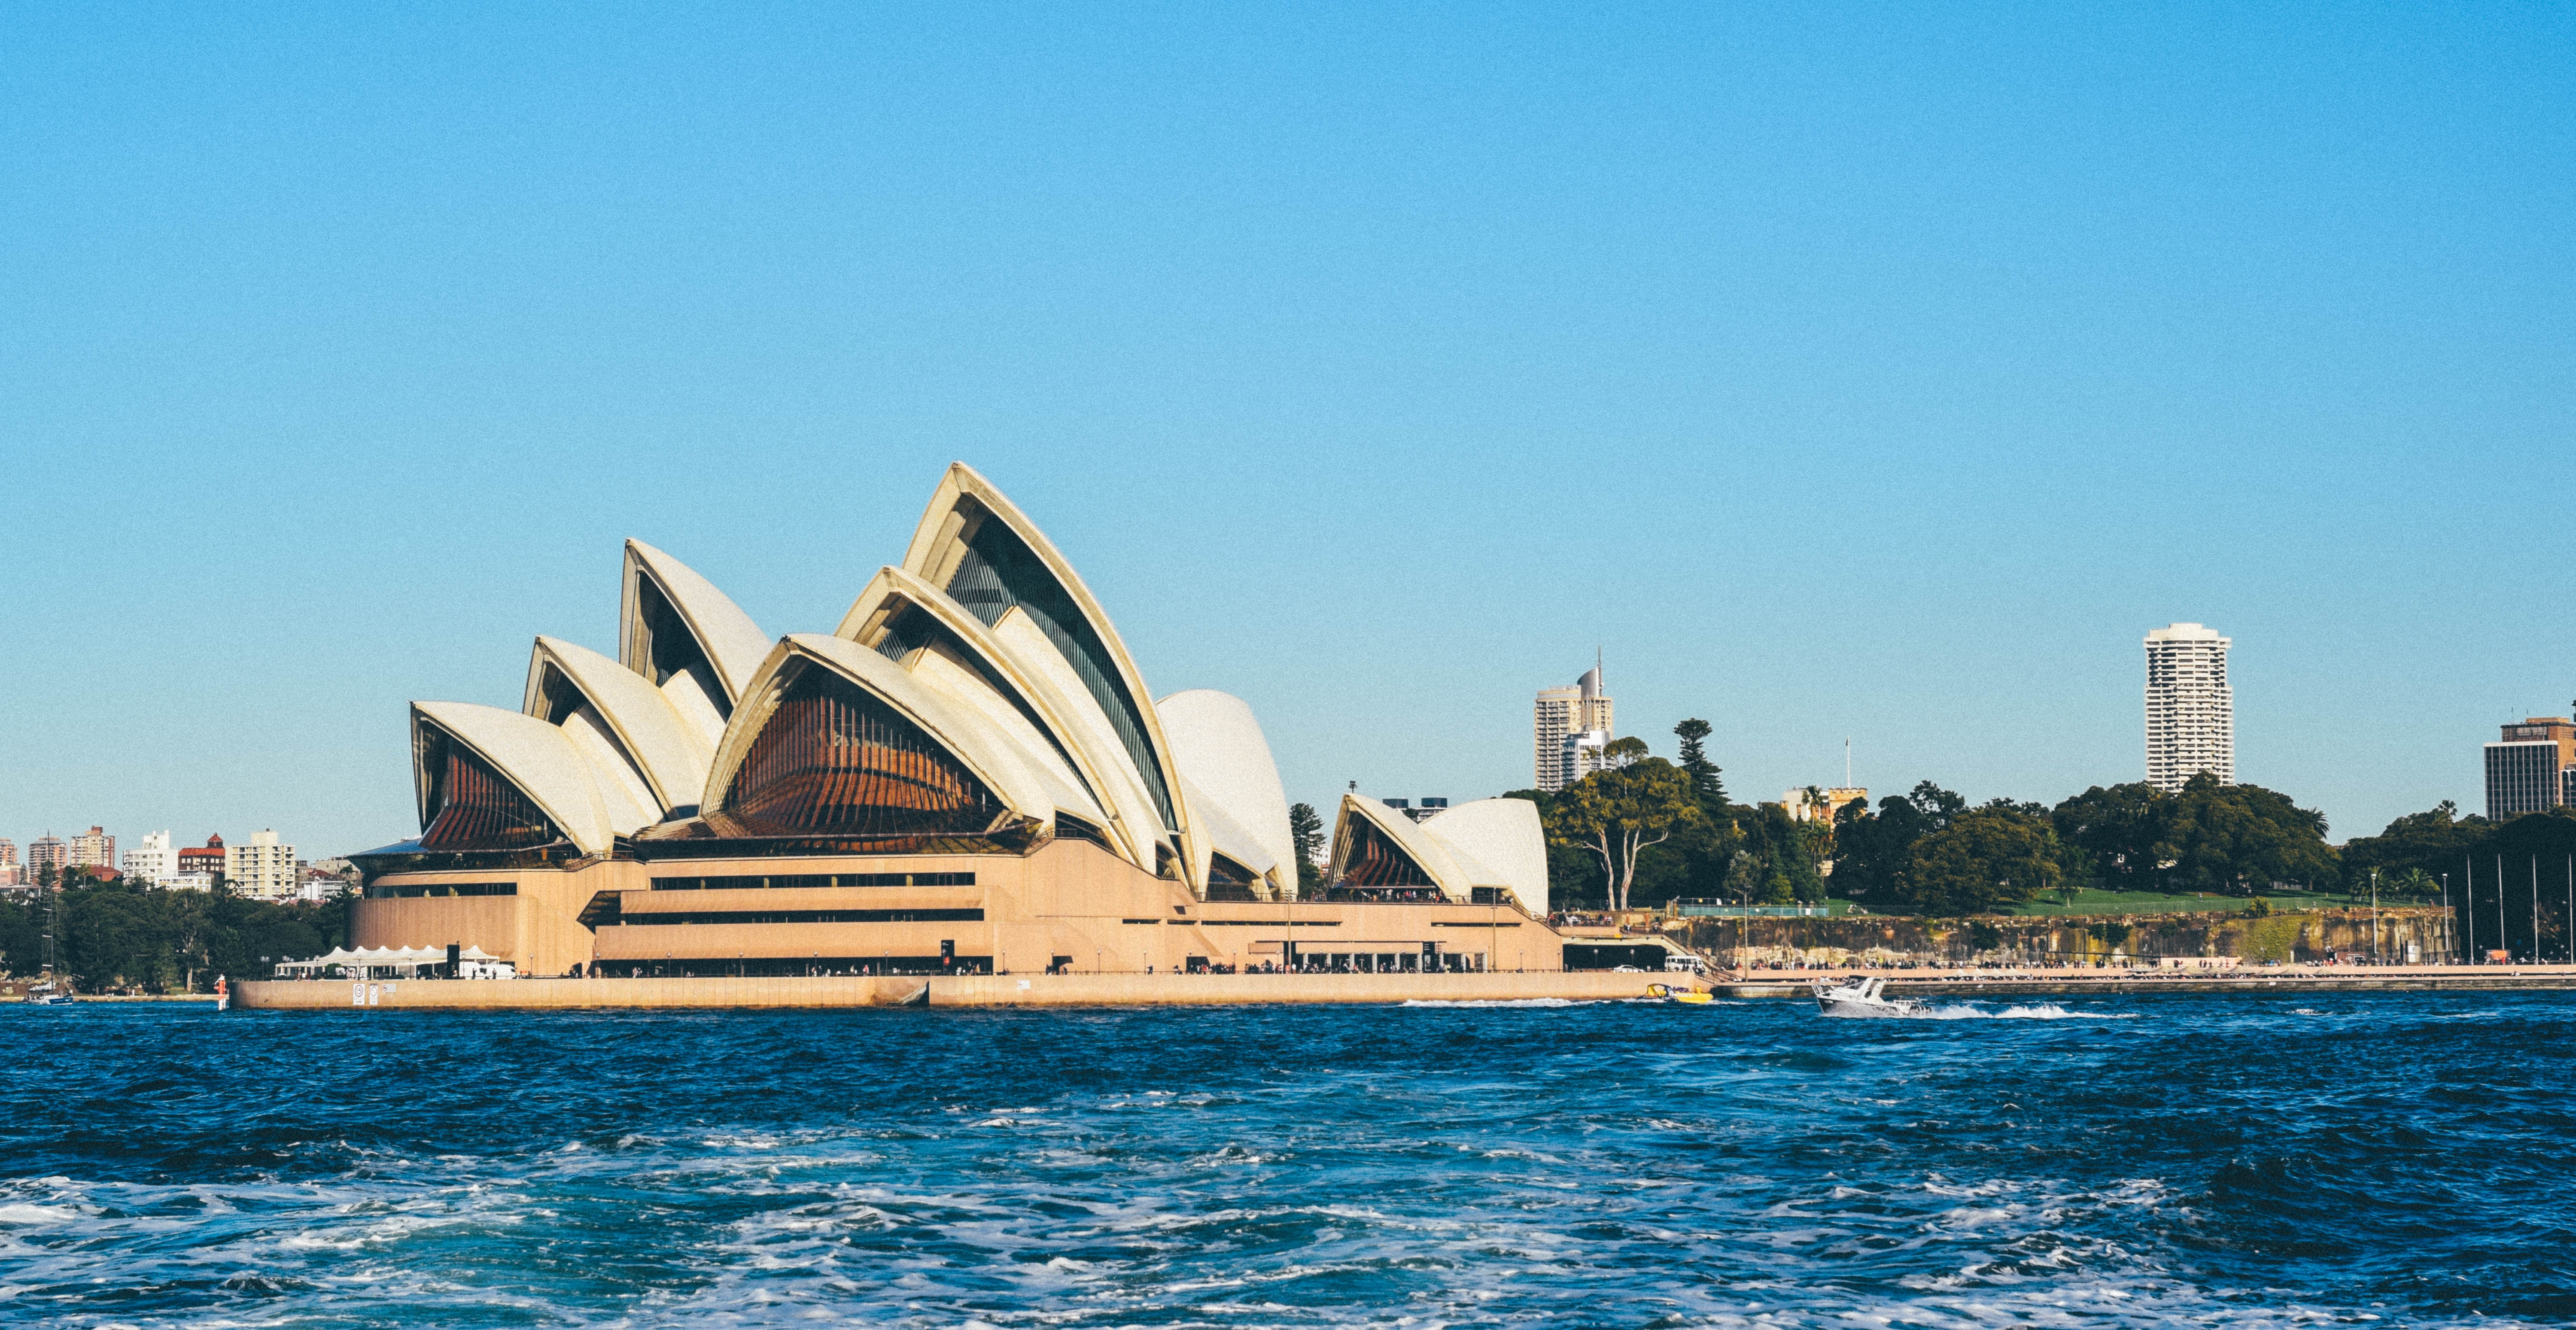 The building of the Sydney Opera House seen from the water